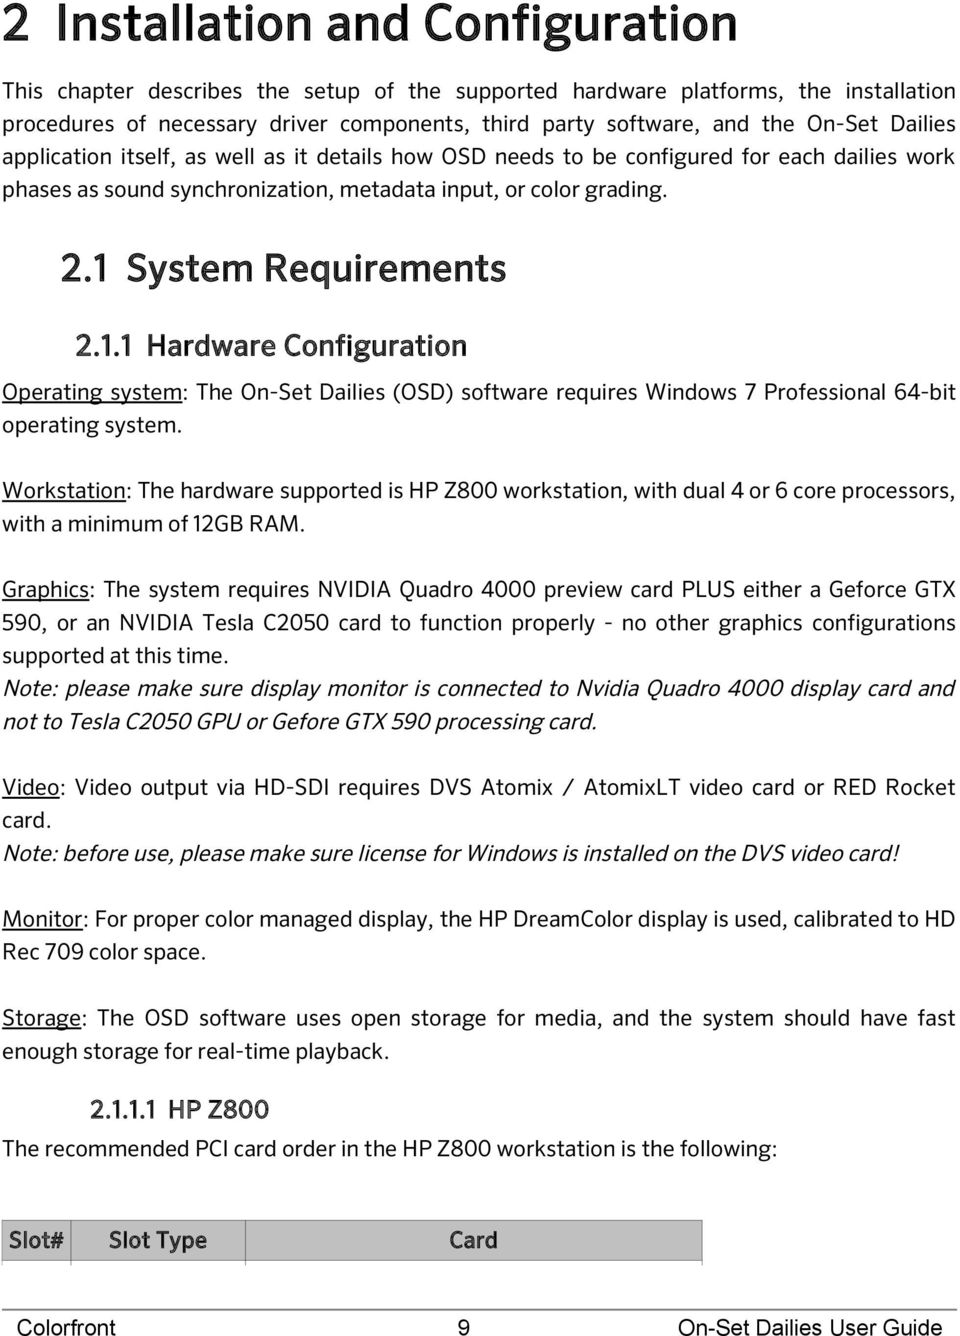 System Requirements 2.1.1 Hardware Configuration Operating system: The On-Set Dailies (OSD) software requires Windows 7 Professional 64-bit operating system.